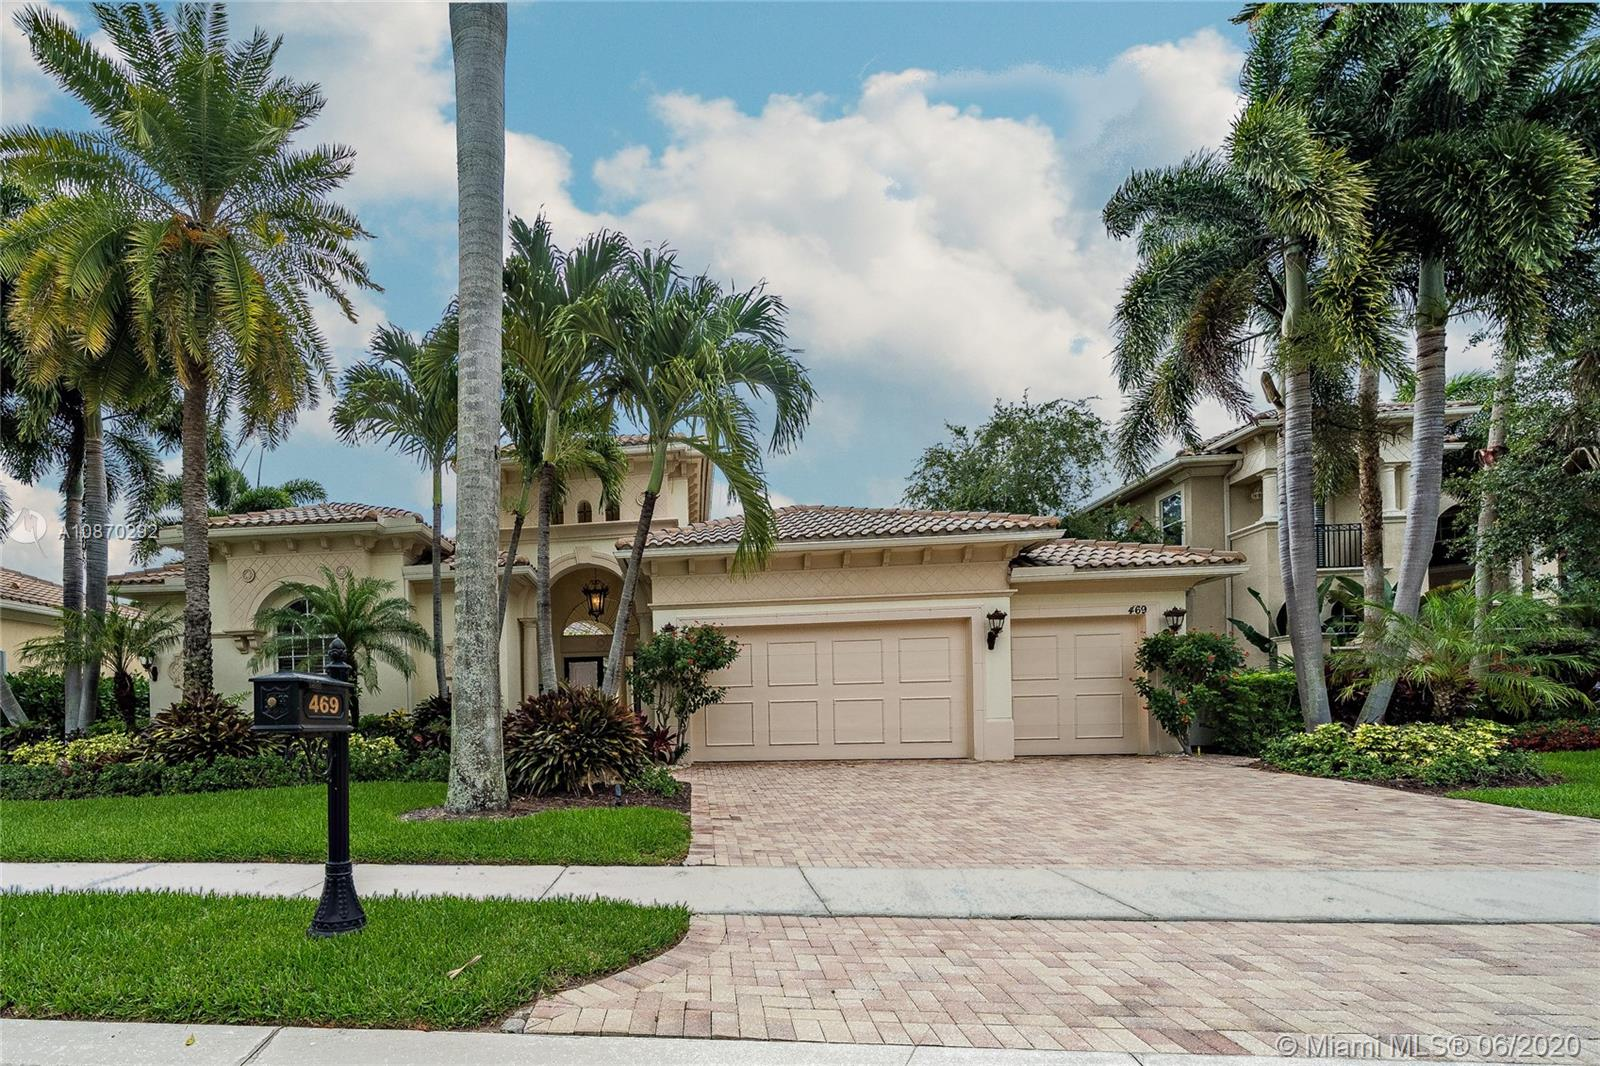 Property for sale at 469 Savoie Dr, Palm Beach Gardens,  Florida 33410